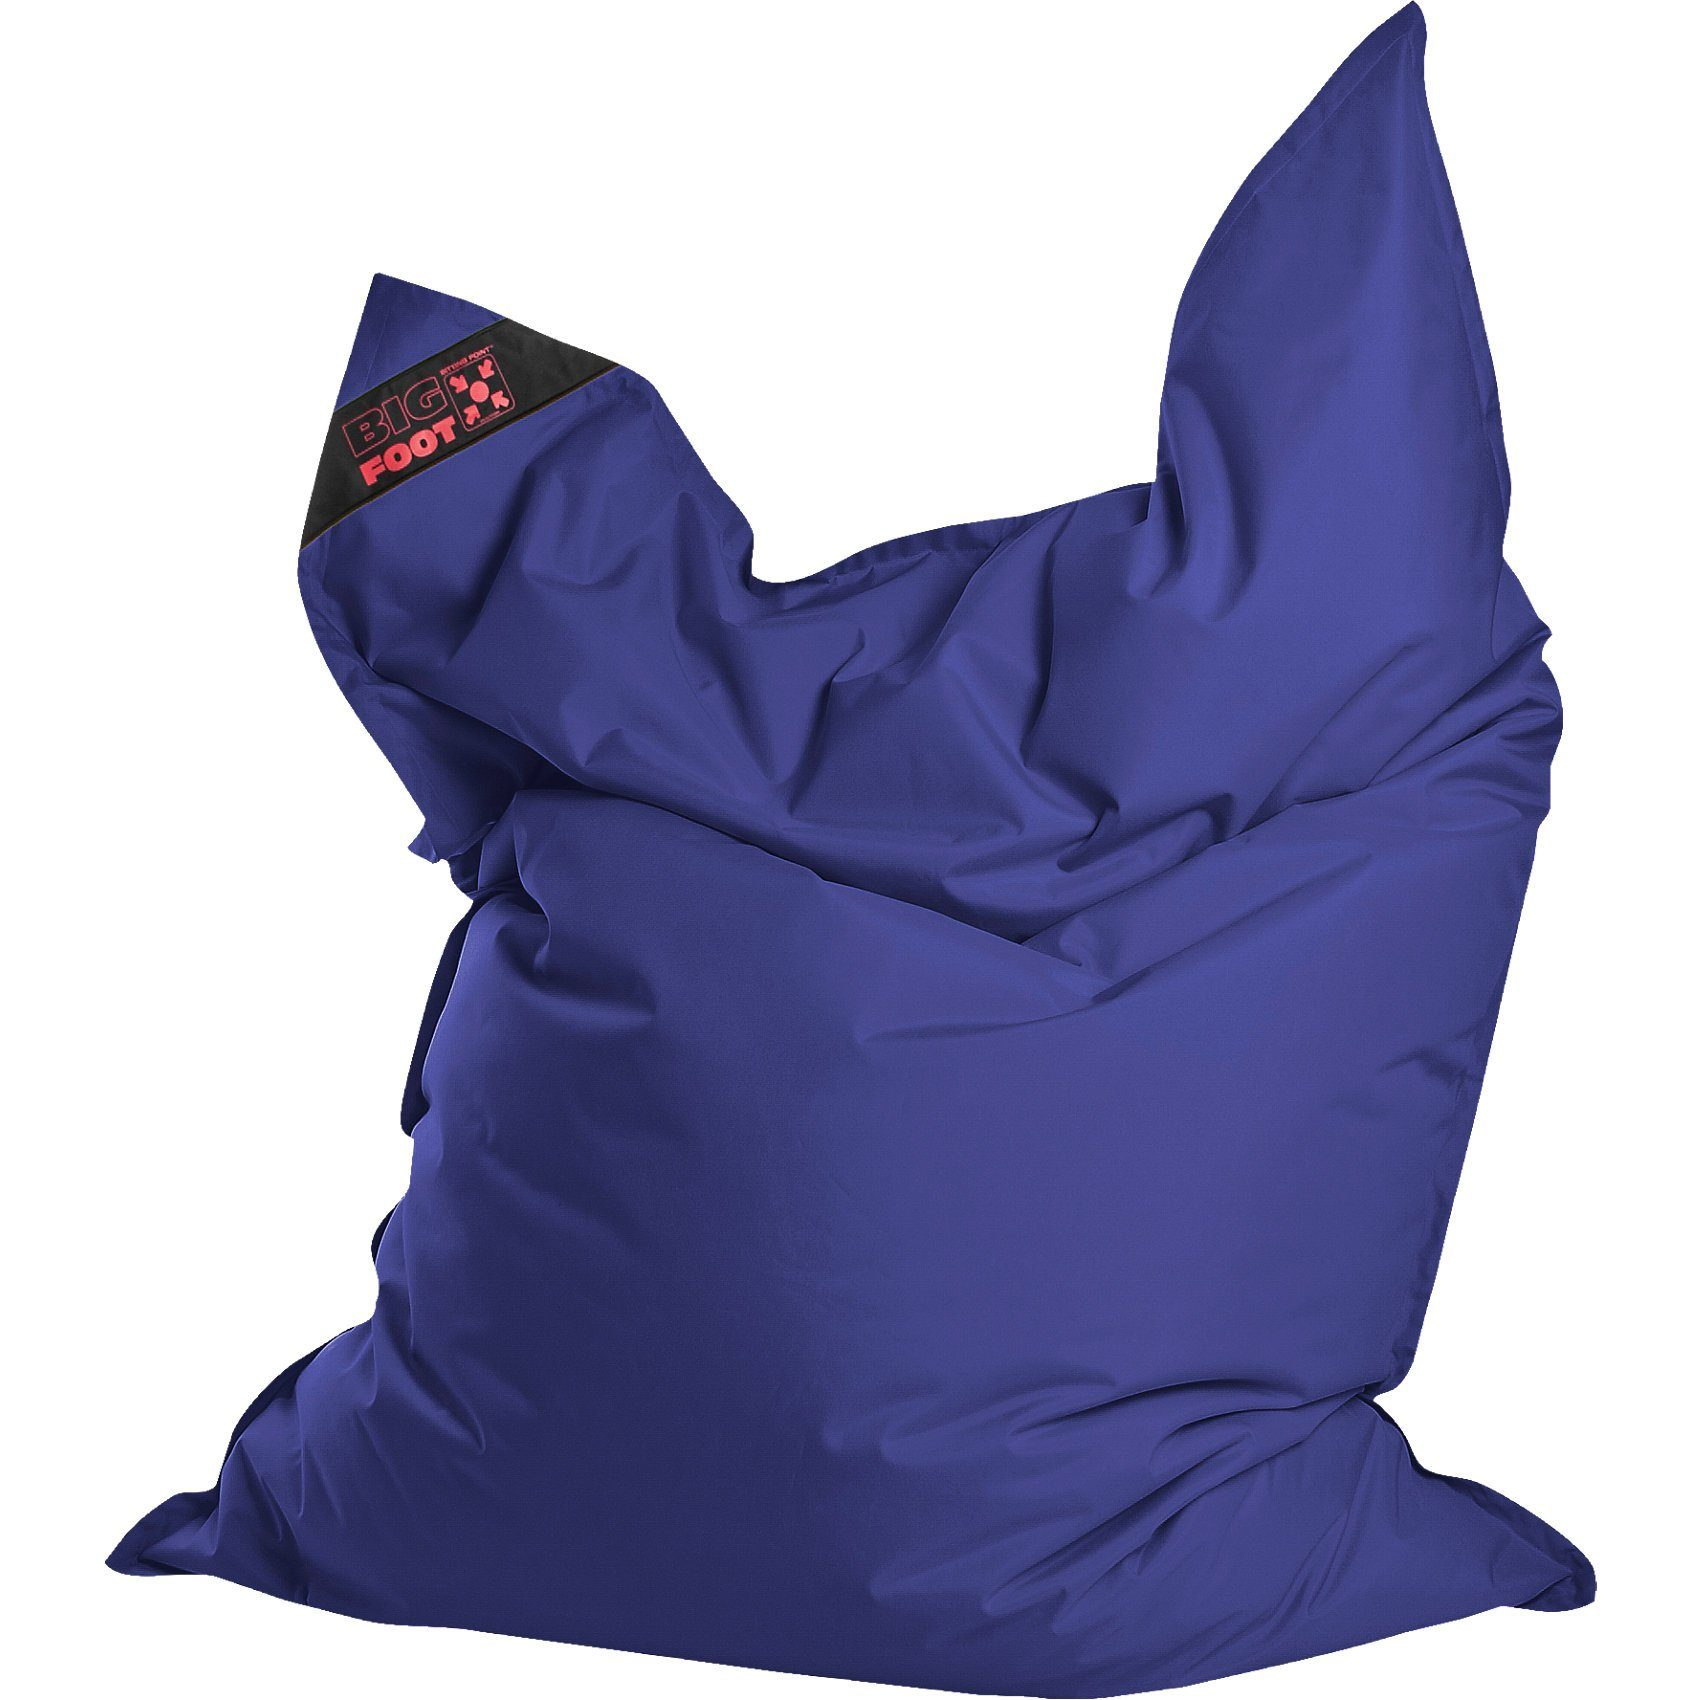 Sitting Point Sitzsack BIGFOOT SCUBA, 130 x 170 cm, dunkelblau